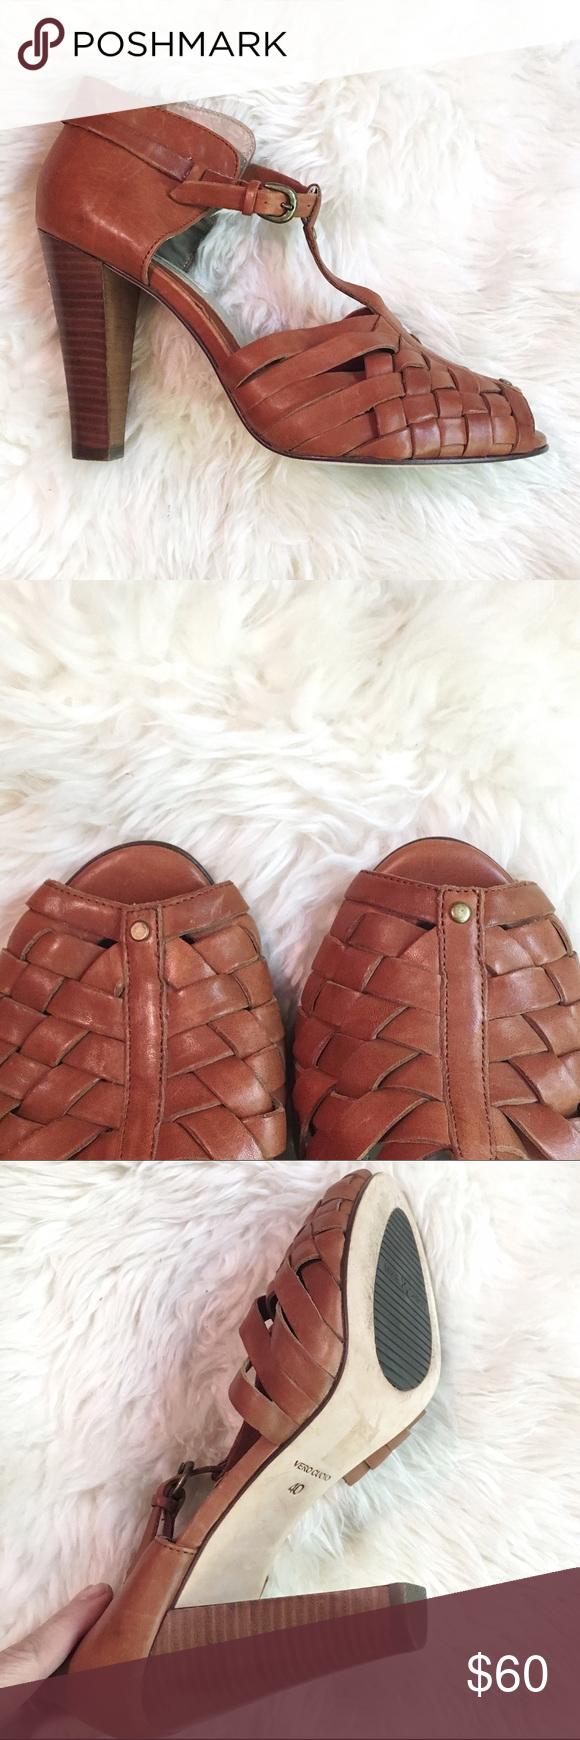 """Mike & Chris Leather Heels Fabulous lightly worn pair of leather woven toe heels. 4"""" heel. Leather sole. Slight scuff on back of one heel (see pic). Cushioned sole. Great everyday heel! Mike & Chris Shoes Heels"""